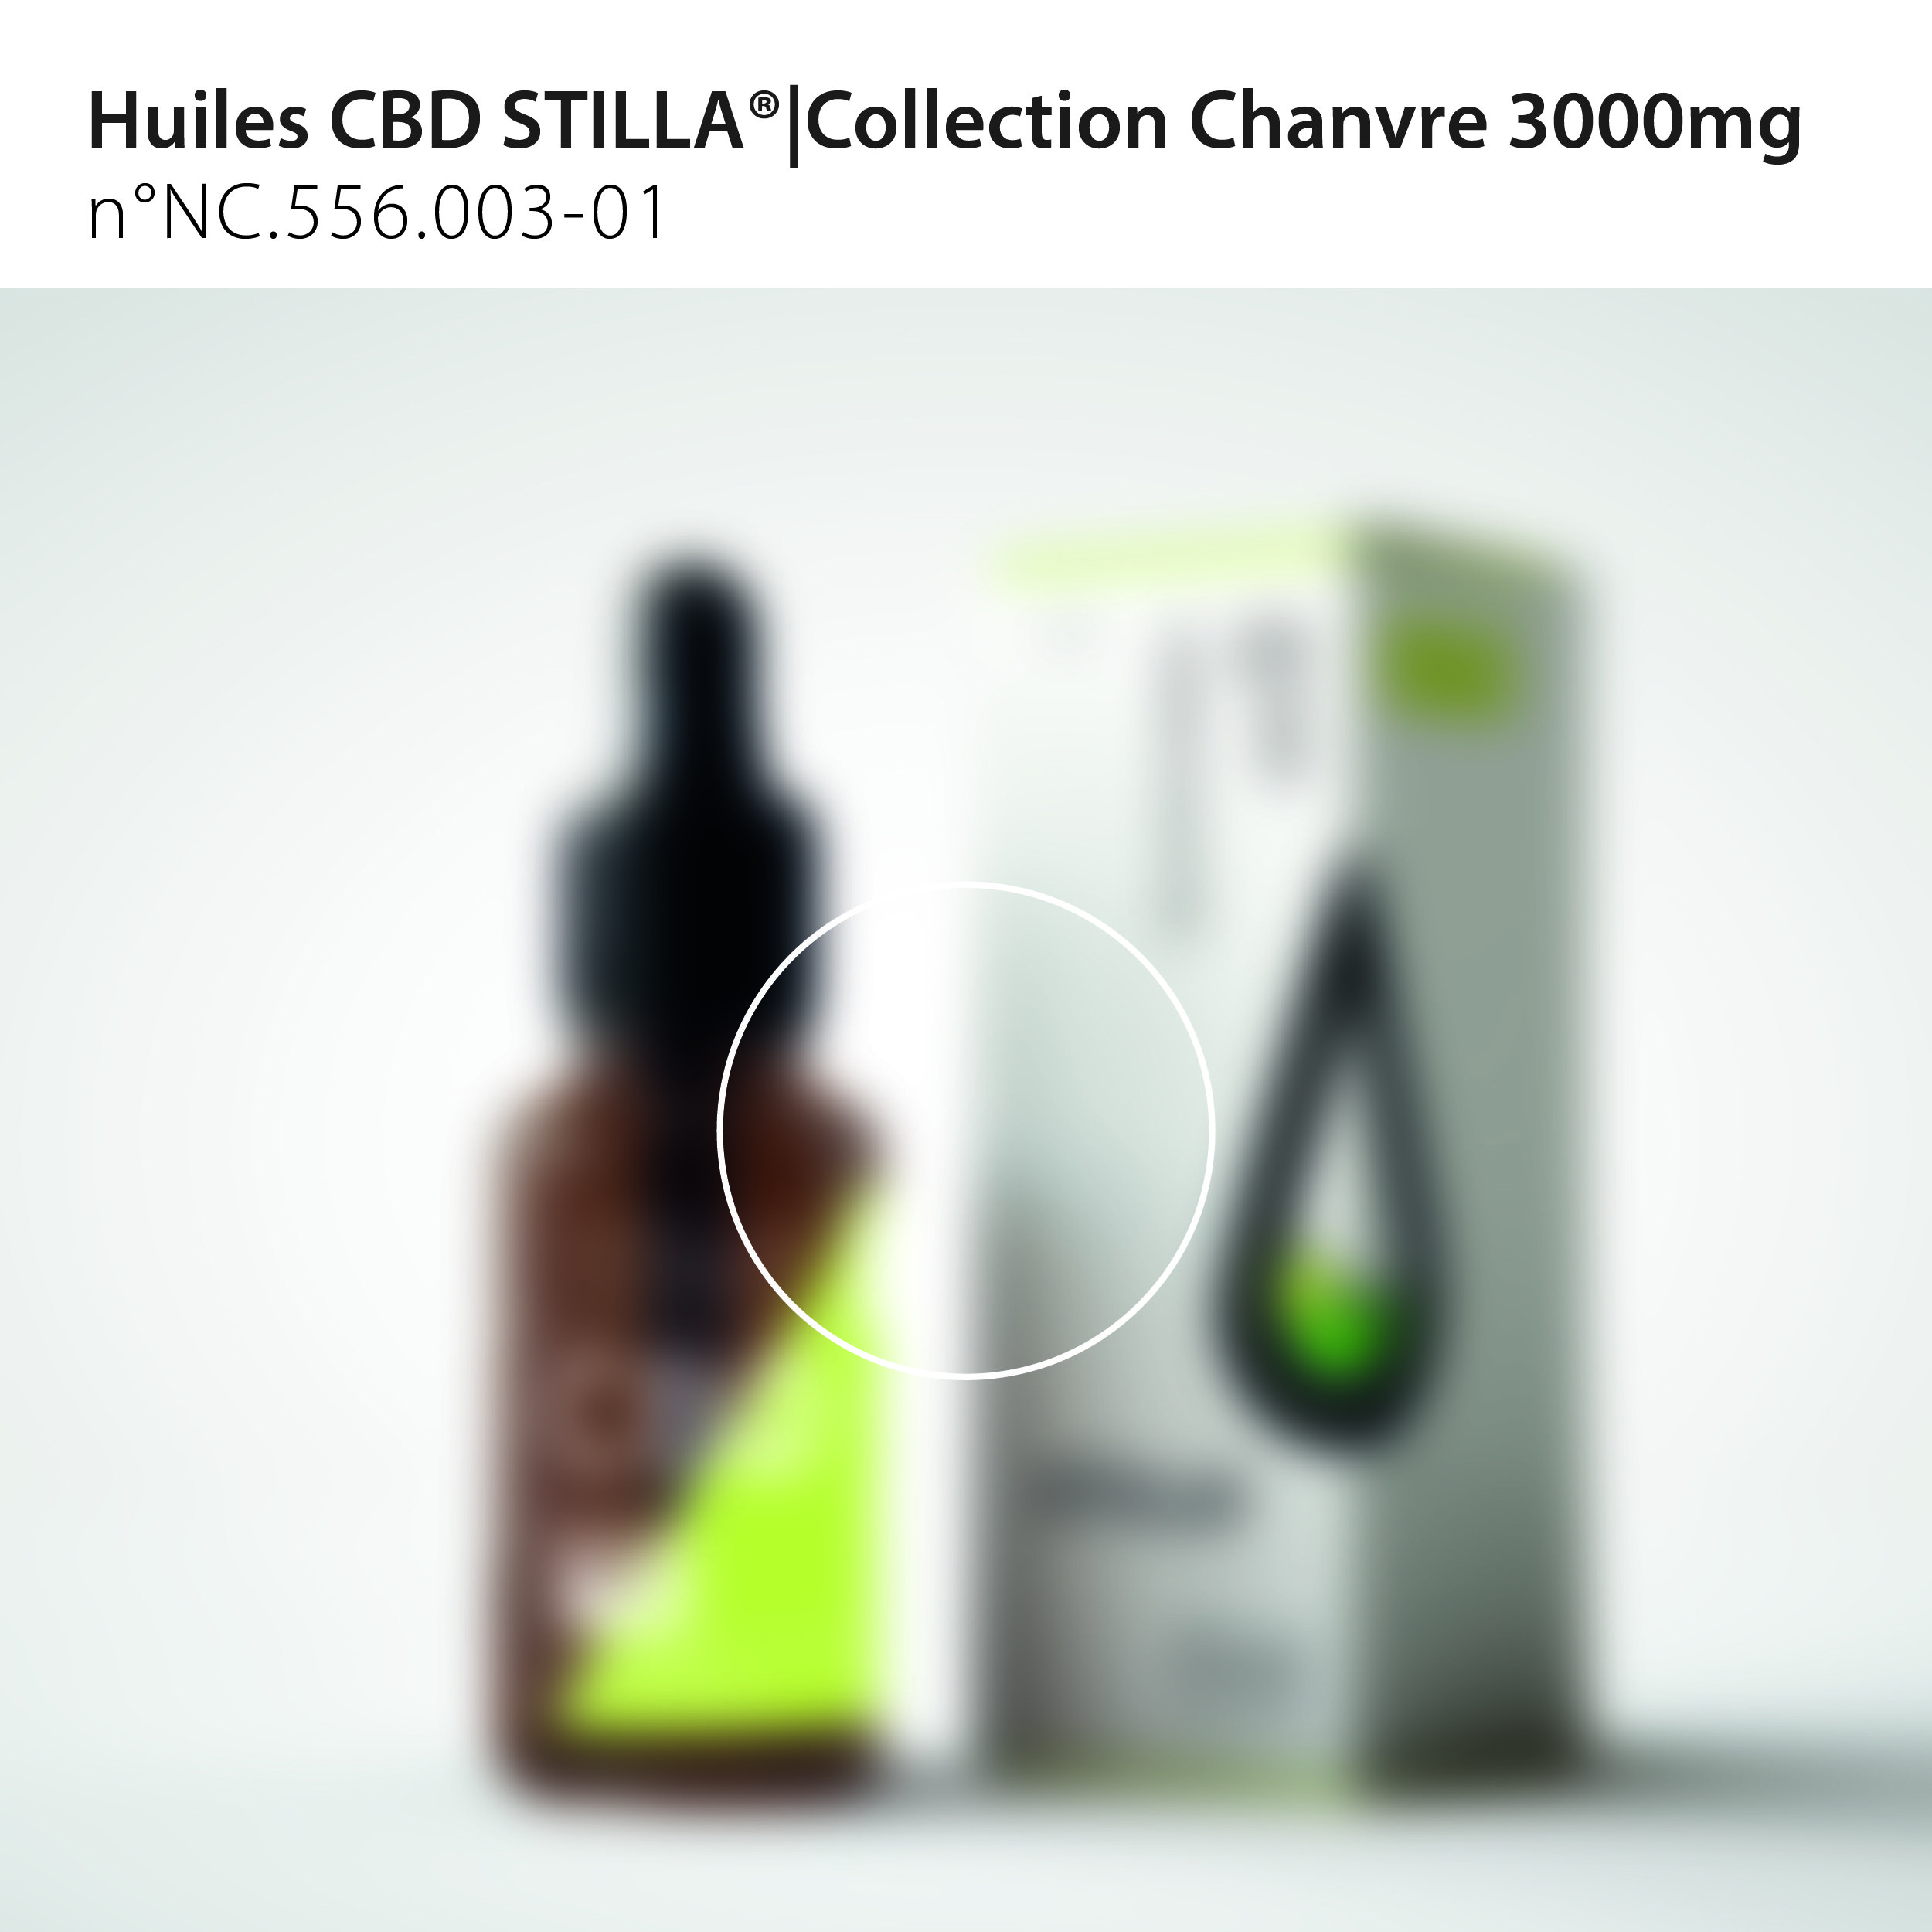 CHANVRE3000_Analyses1.jpg